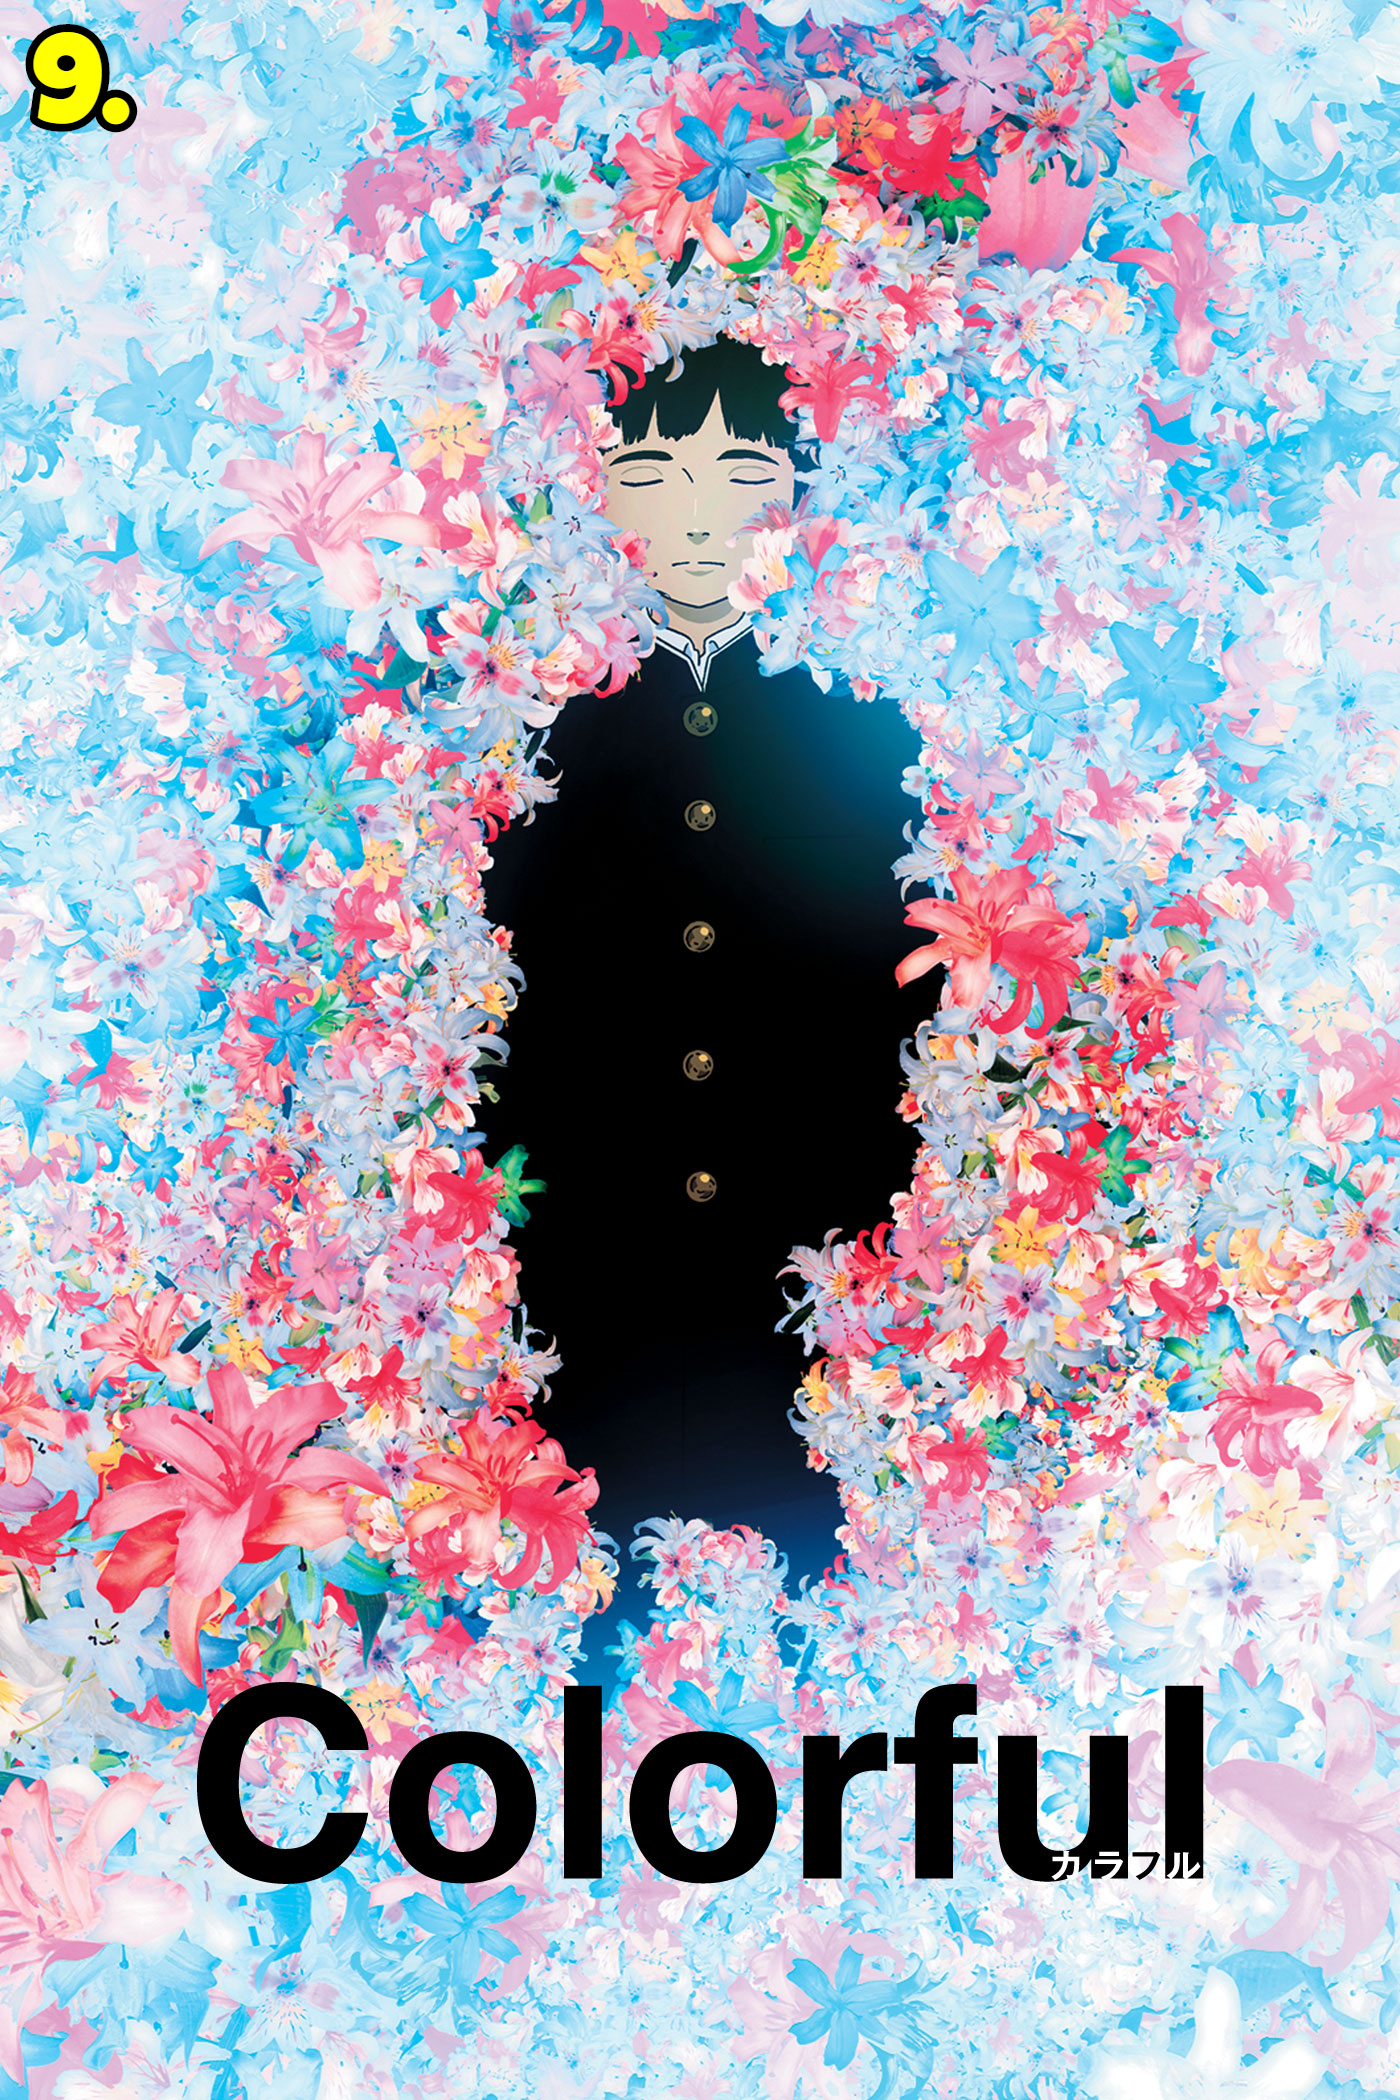 Colorful (2010) (Colorful The Motion Picture)